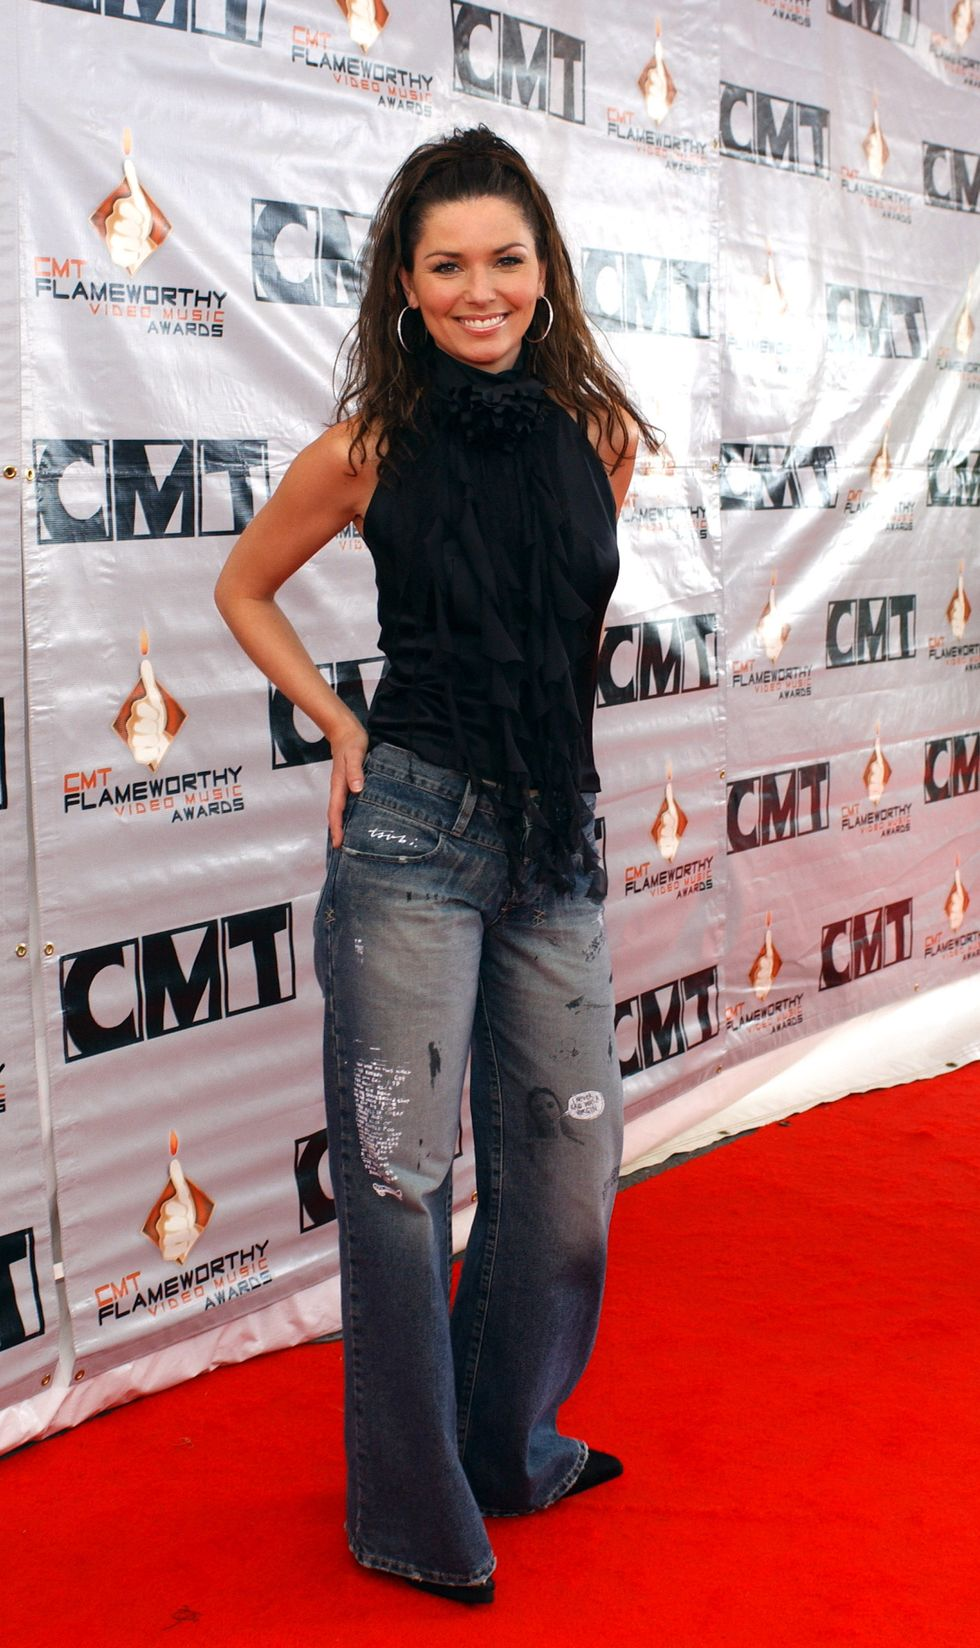 Shania Twain during 2003 CMT Flameworthy Awards - Arrivals at The Gaylord Center in Nashville, Tennessee, United States. (Photo by R. Diamond/WireImage)